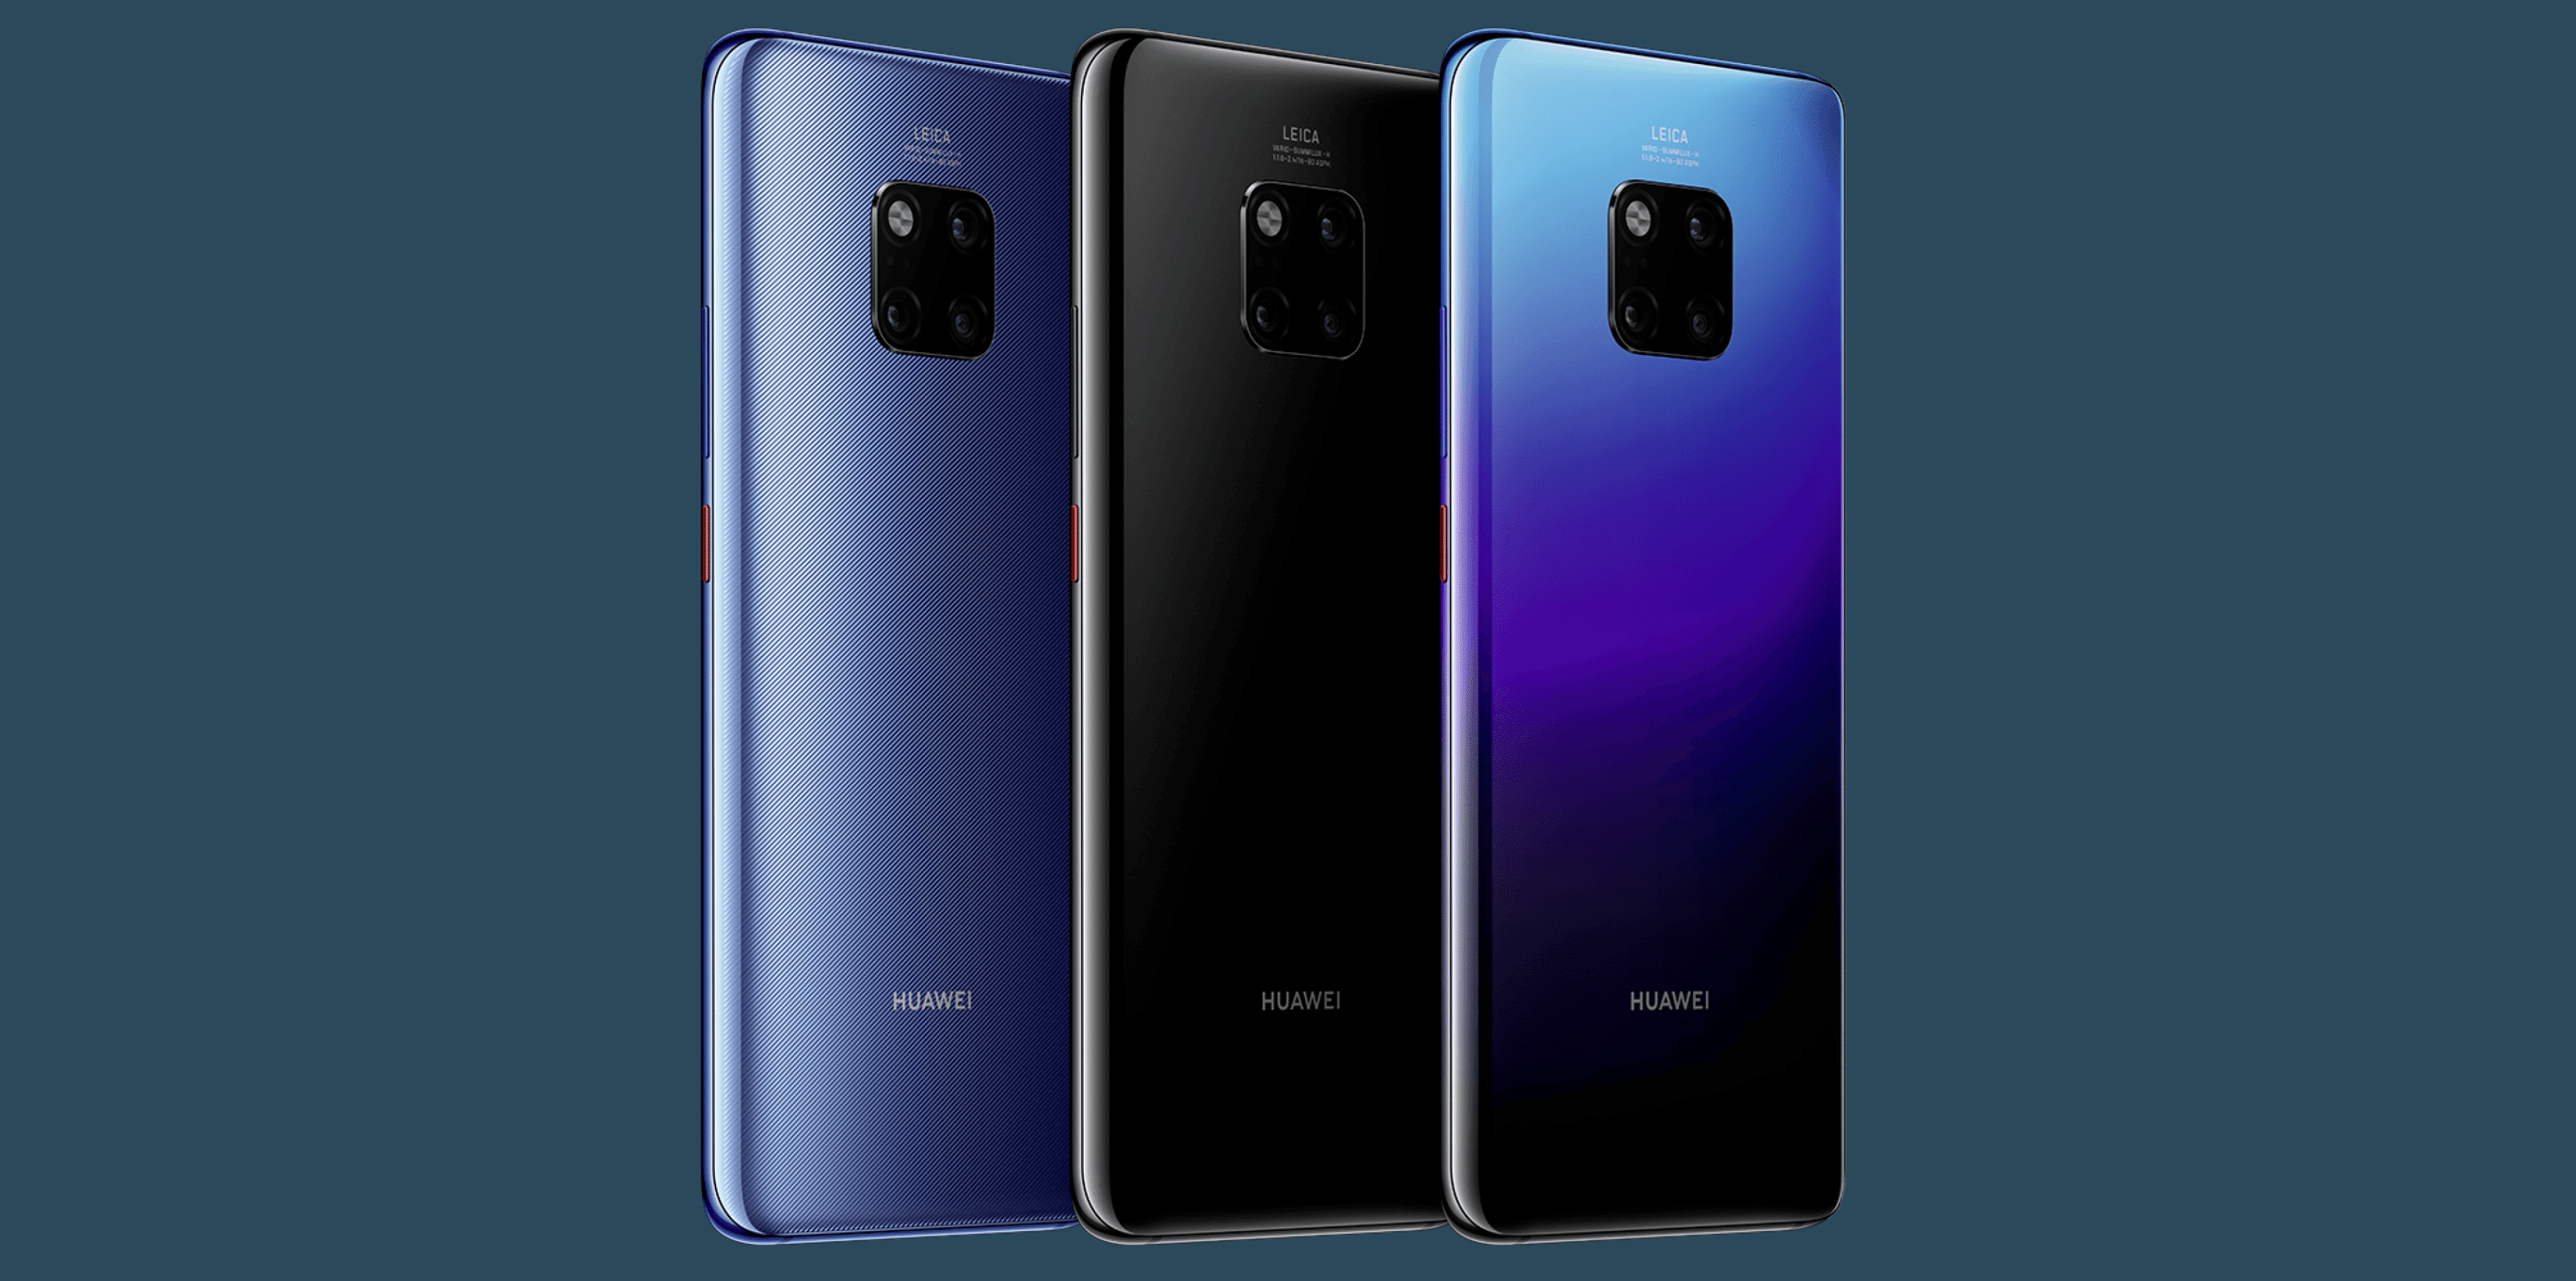 The Huawei Mate 20 Pro takes smartphone photography to the next level